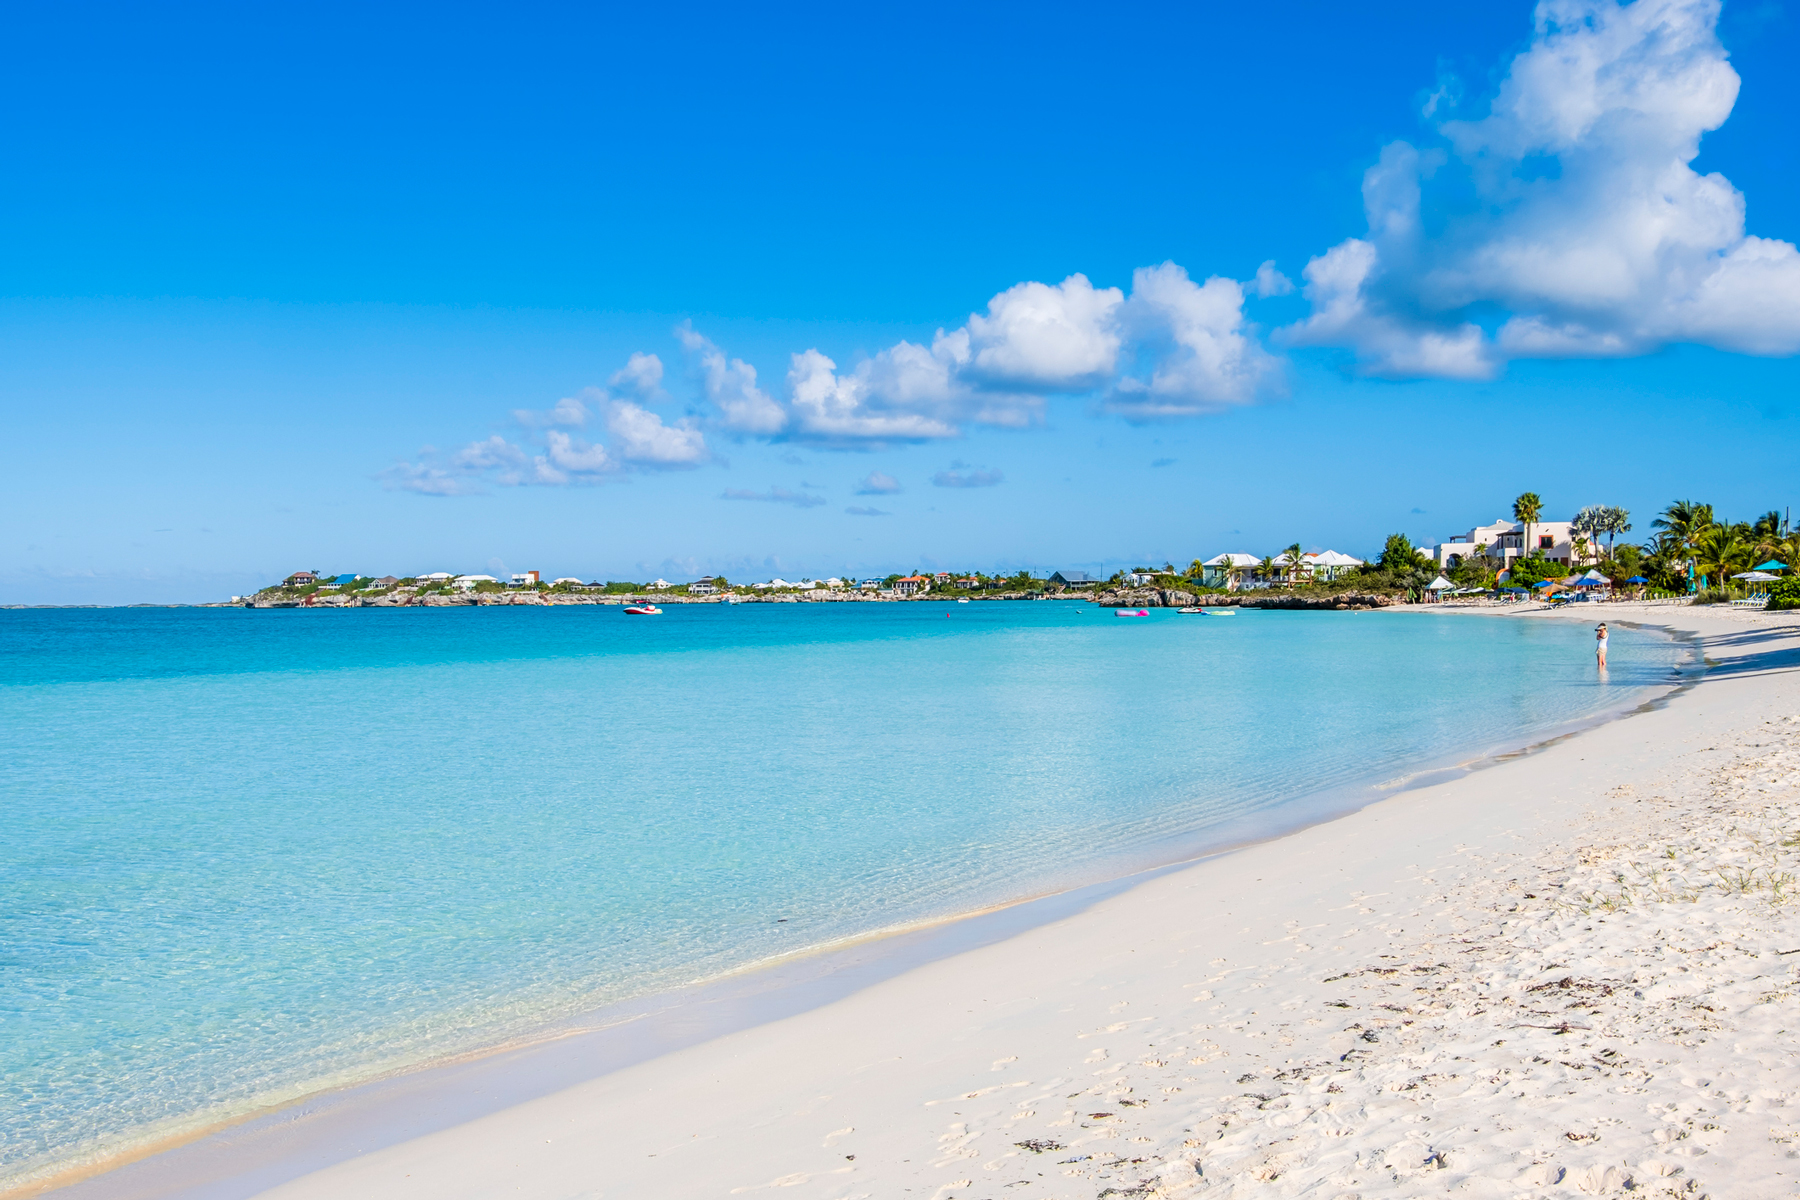 Turks and Caicos, Providenciales - Sapodilla Bay